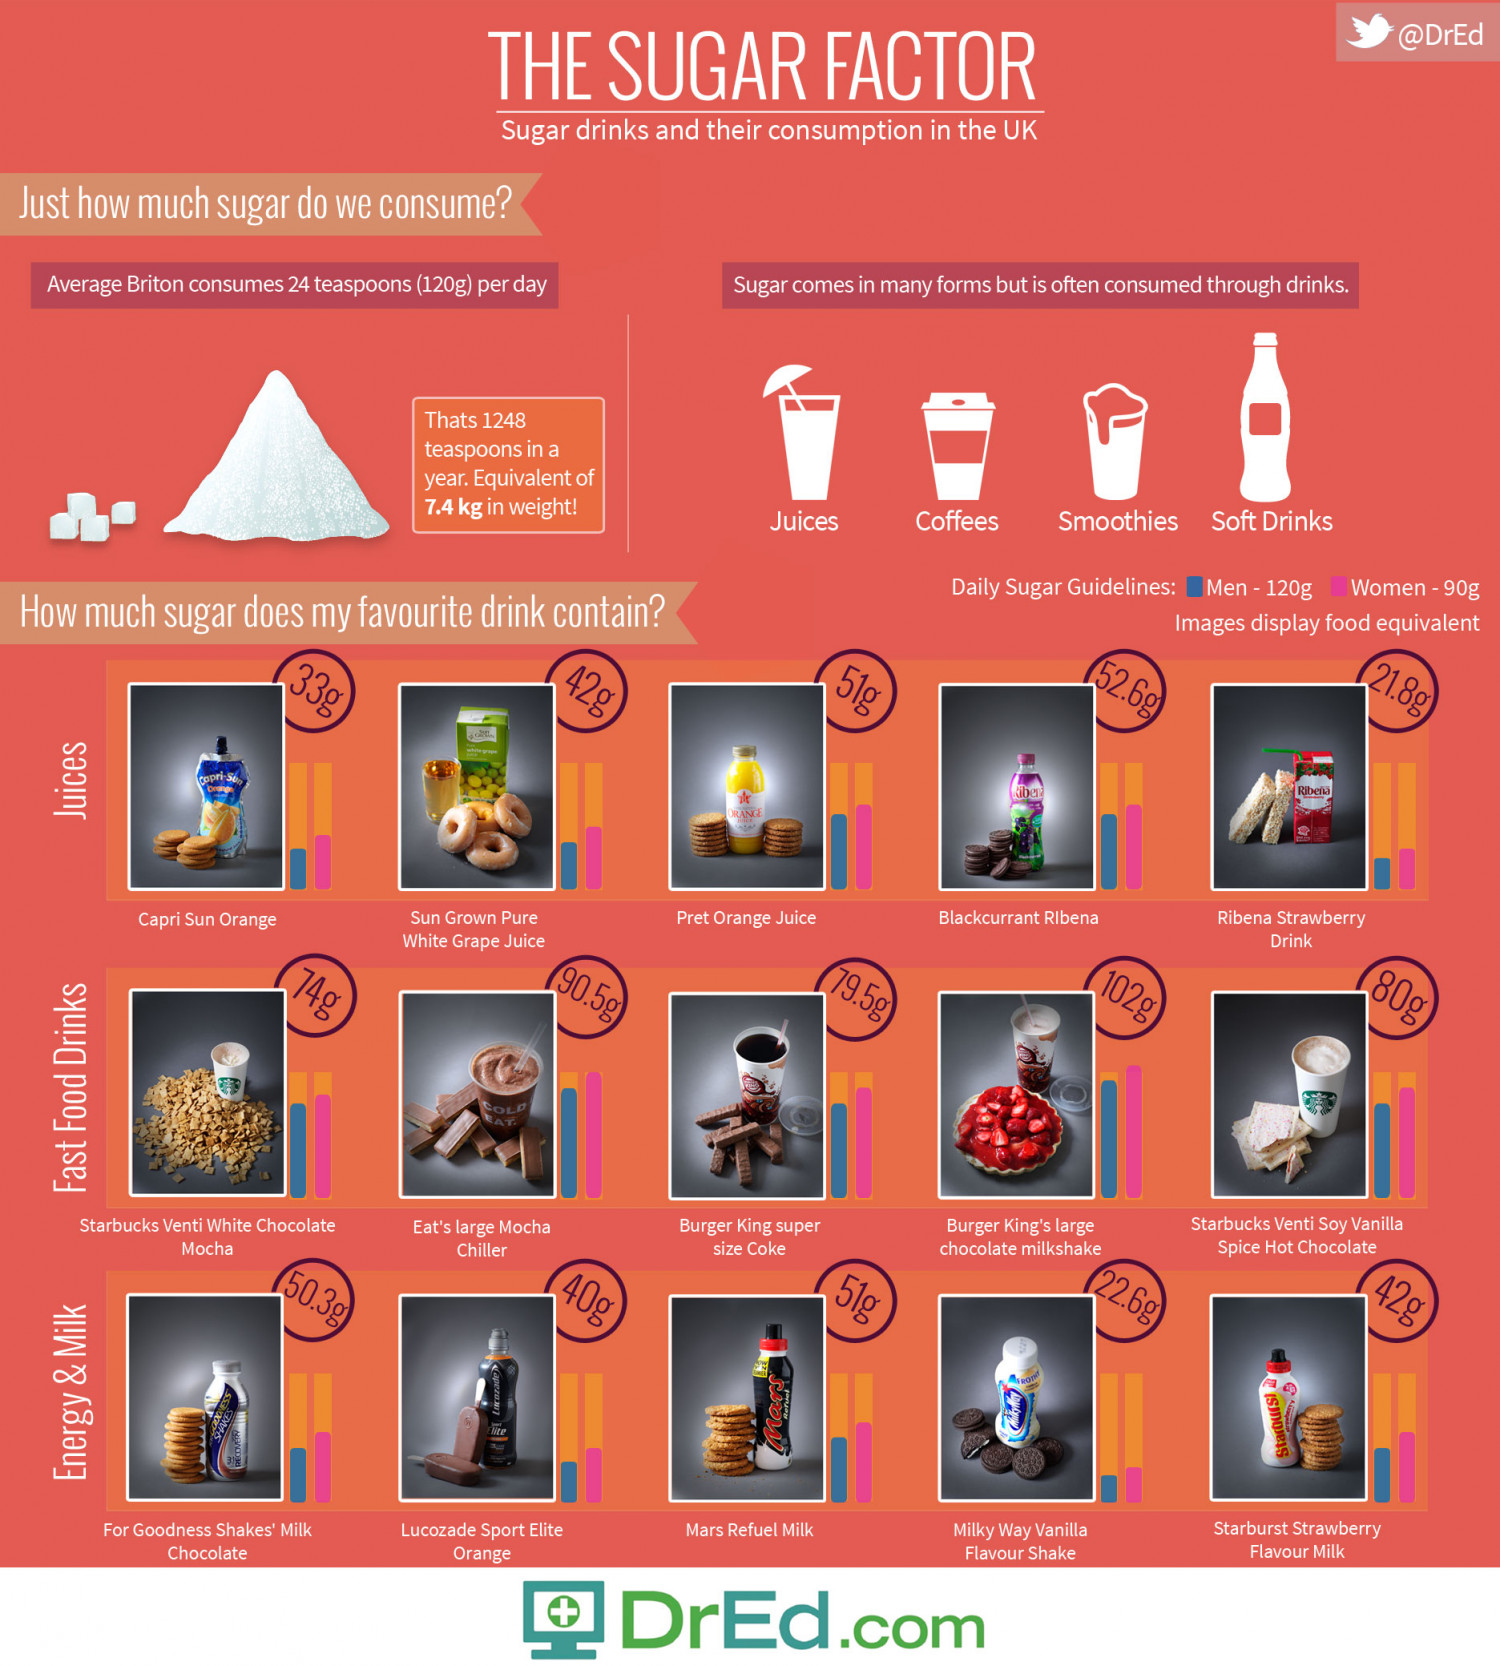 The Sugar Factor Infographic